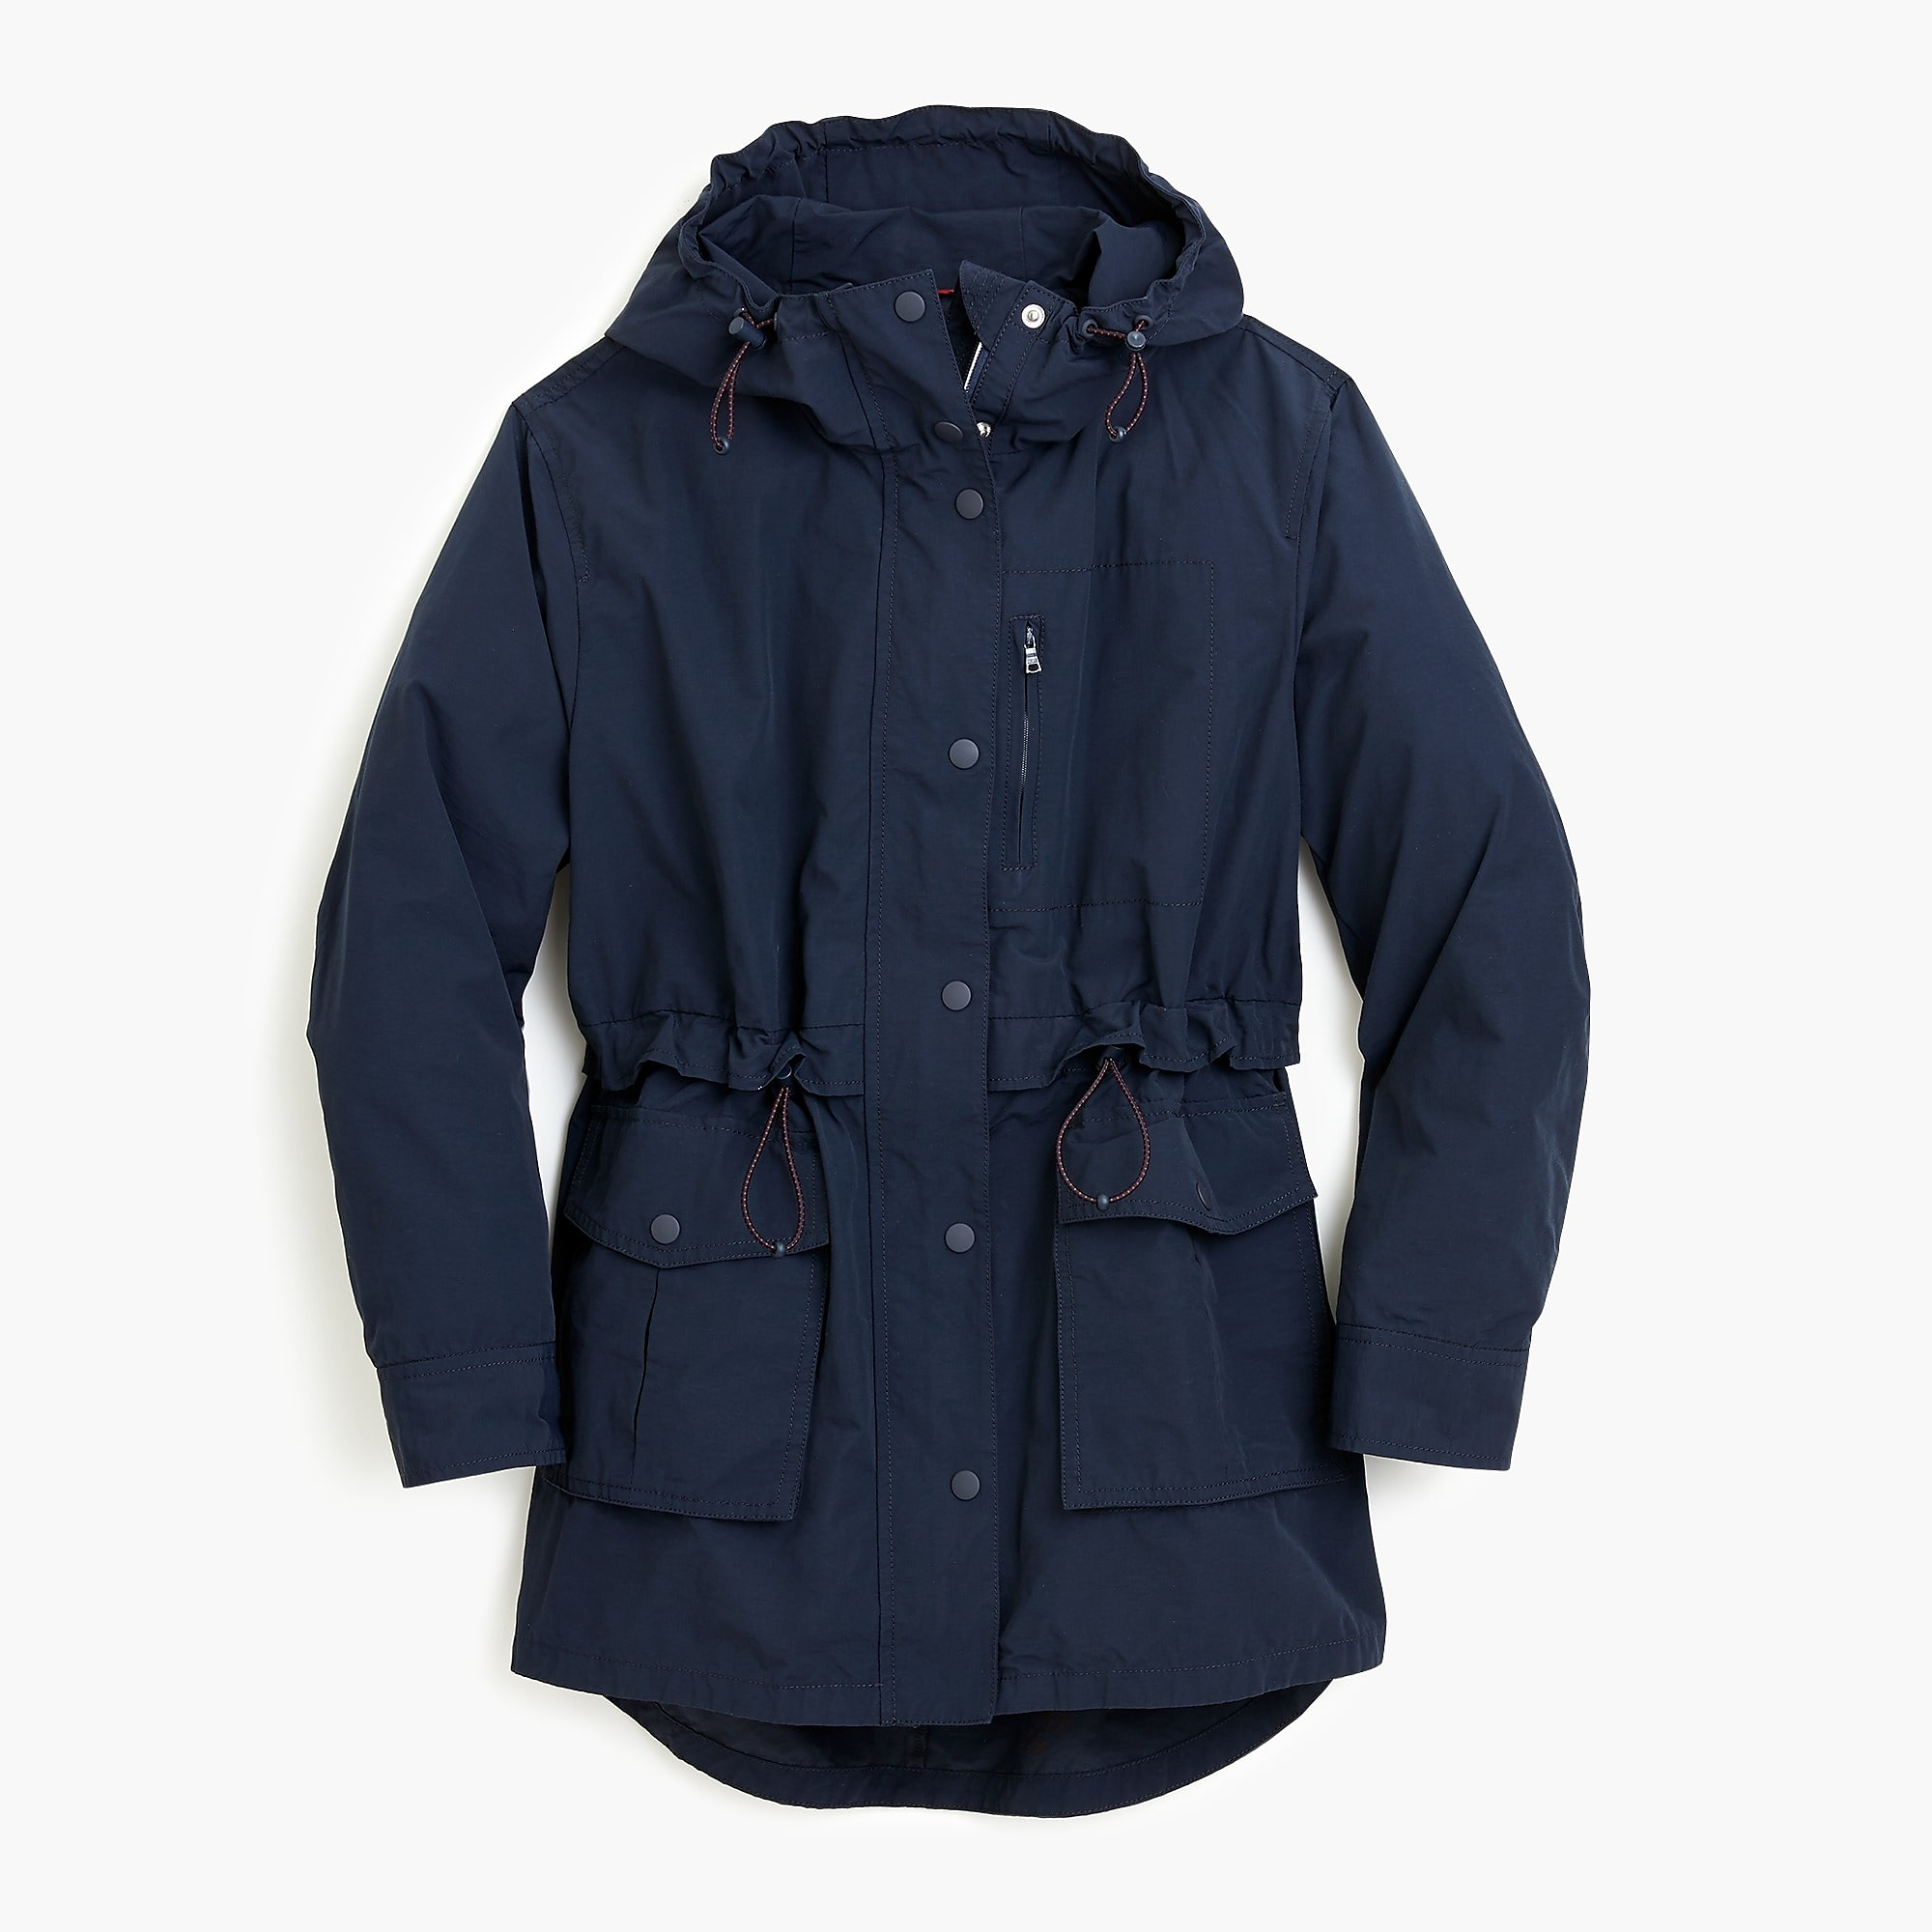 Navy Blue Rain Jacket